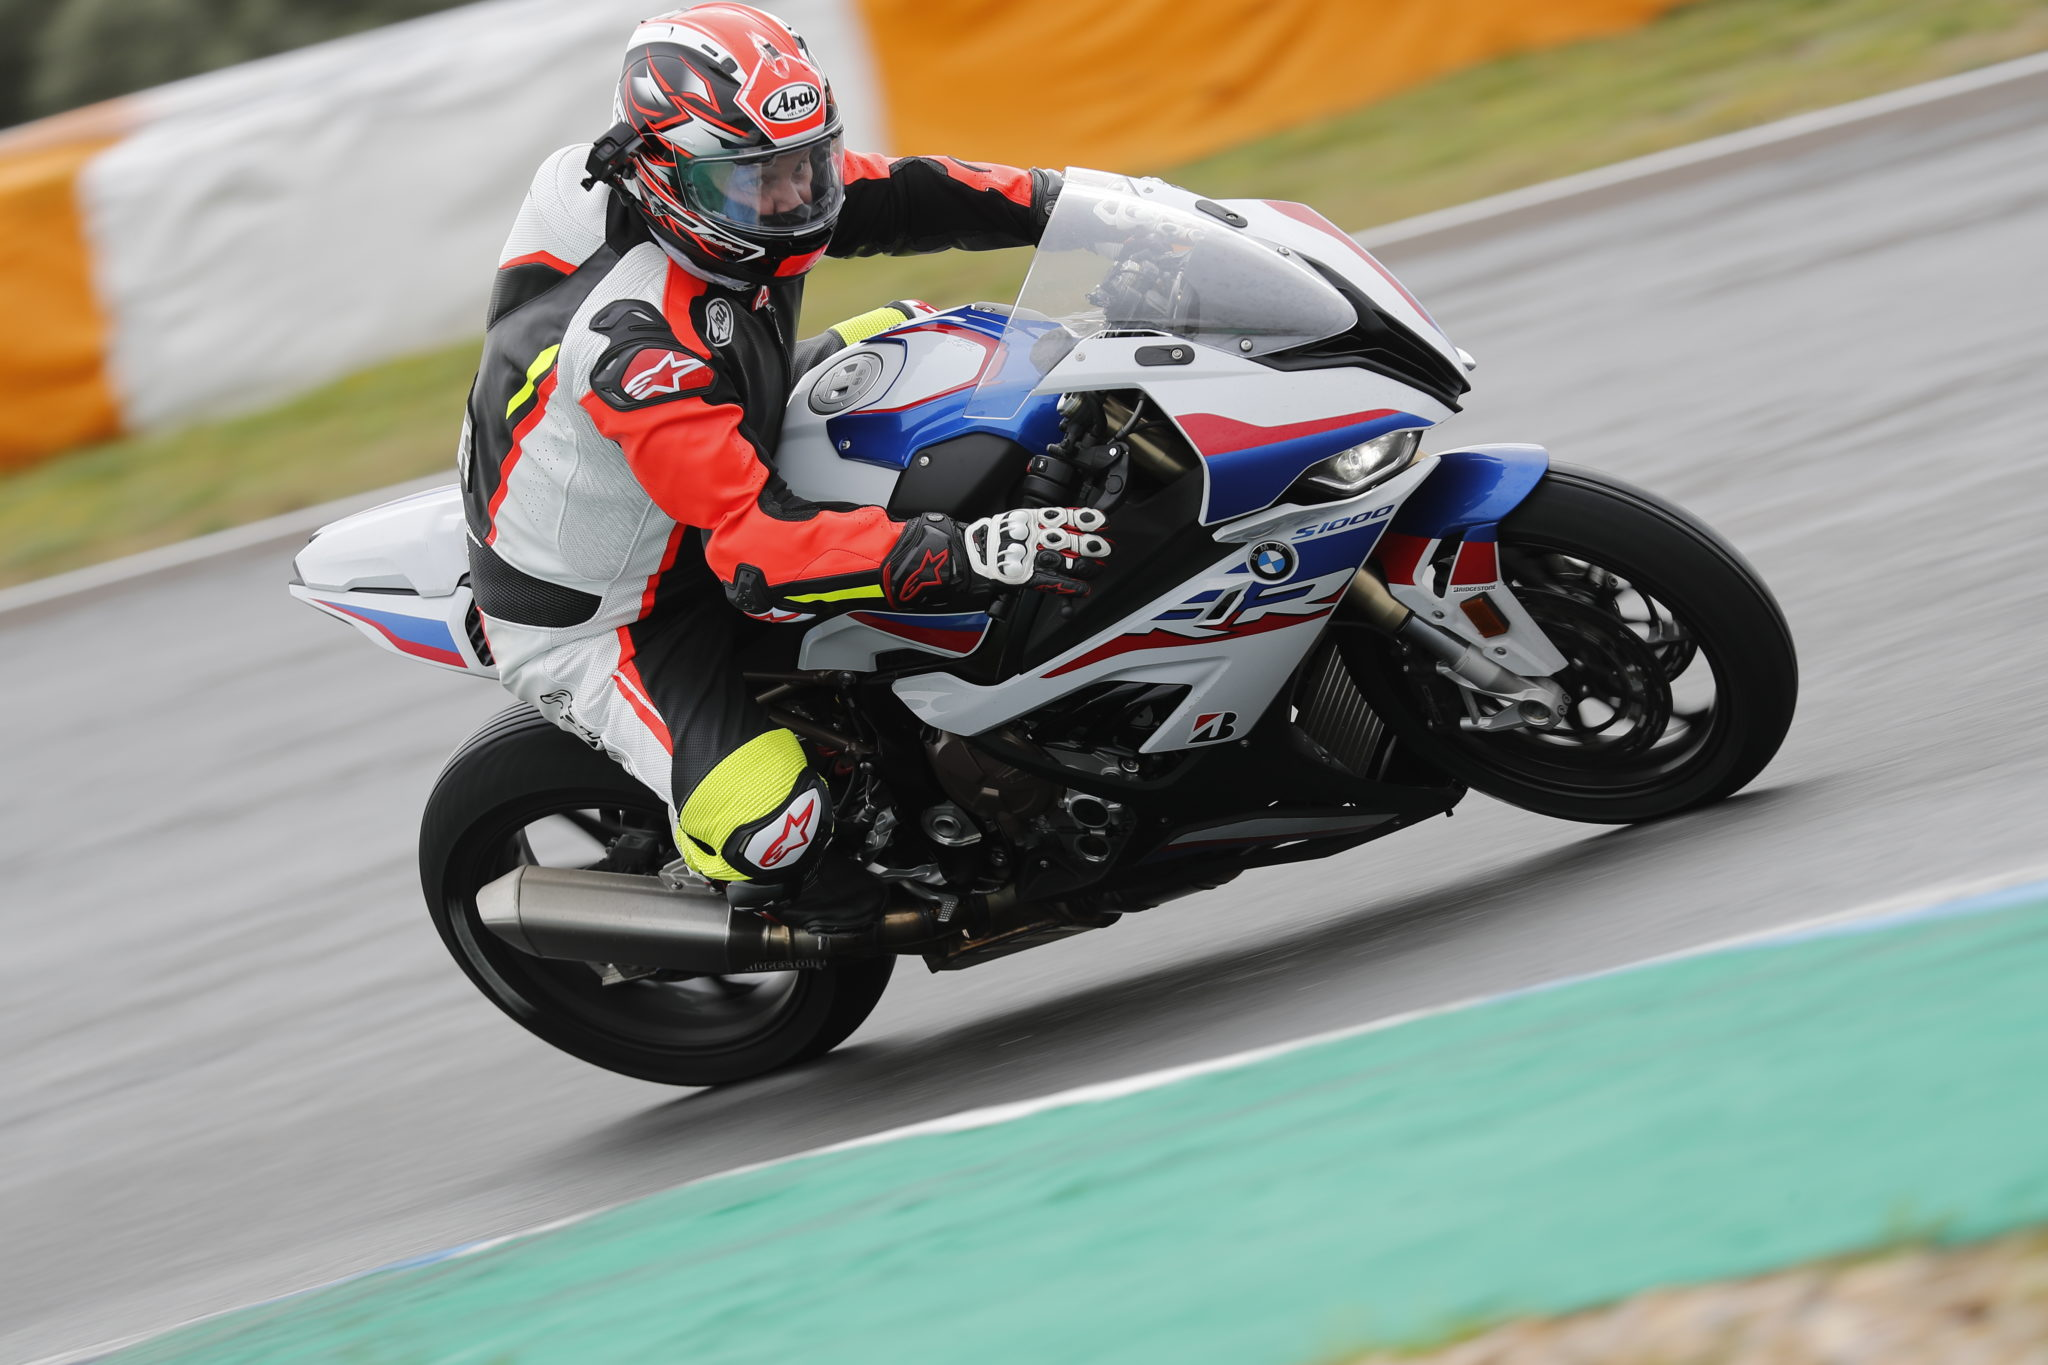 BMW S 1000 RR, International Media Launch, RACETRACK CIRCUITO DO ESTORIL